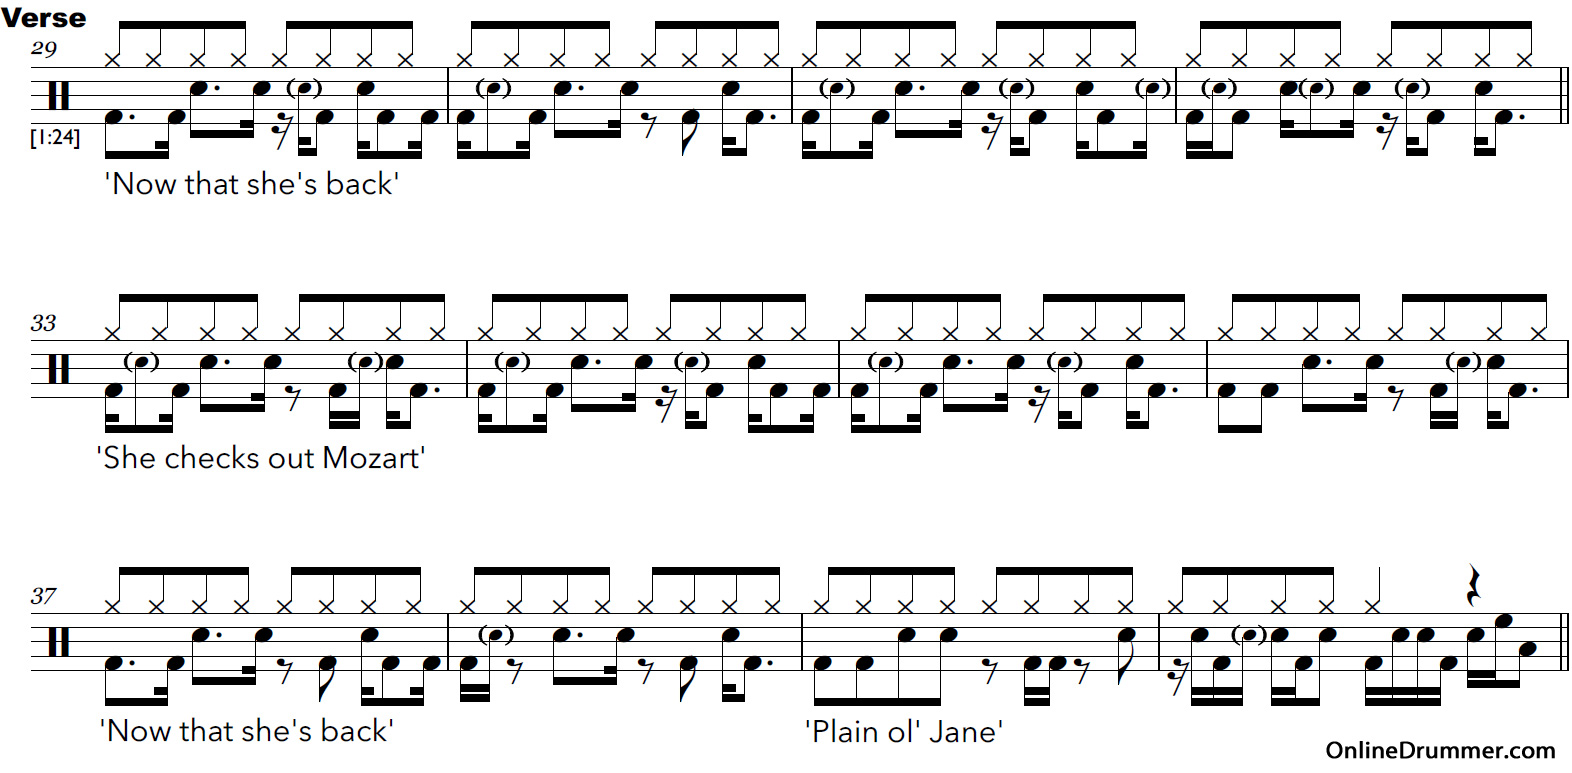 Make Drum Sheet Music Online Free